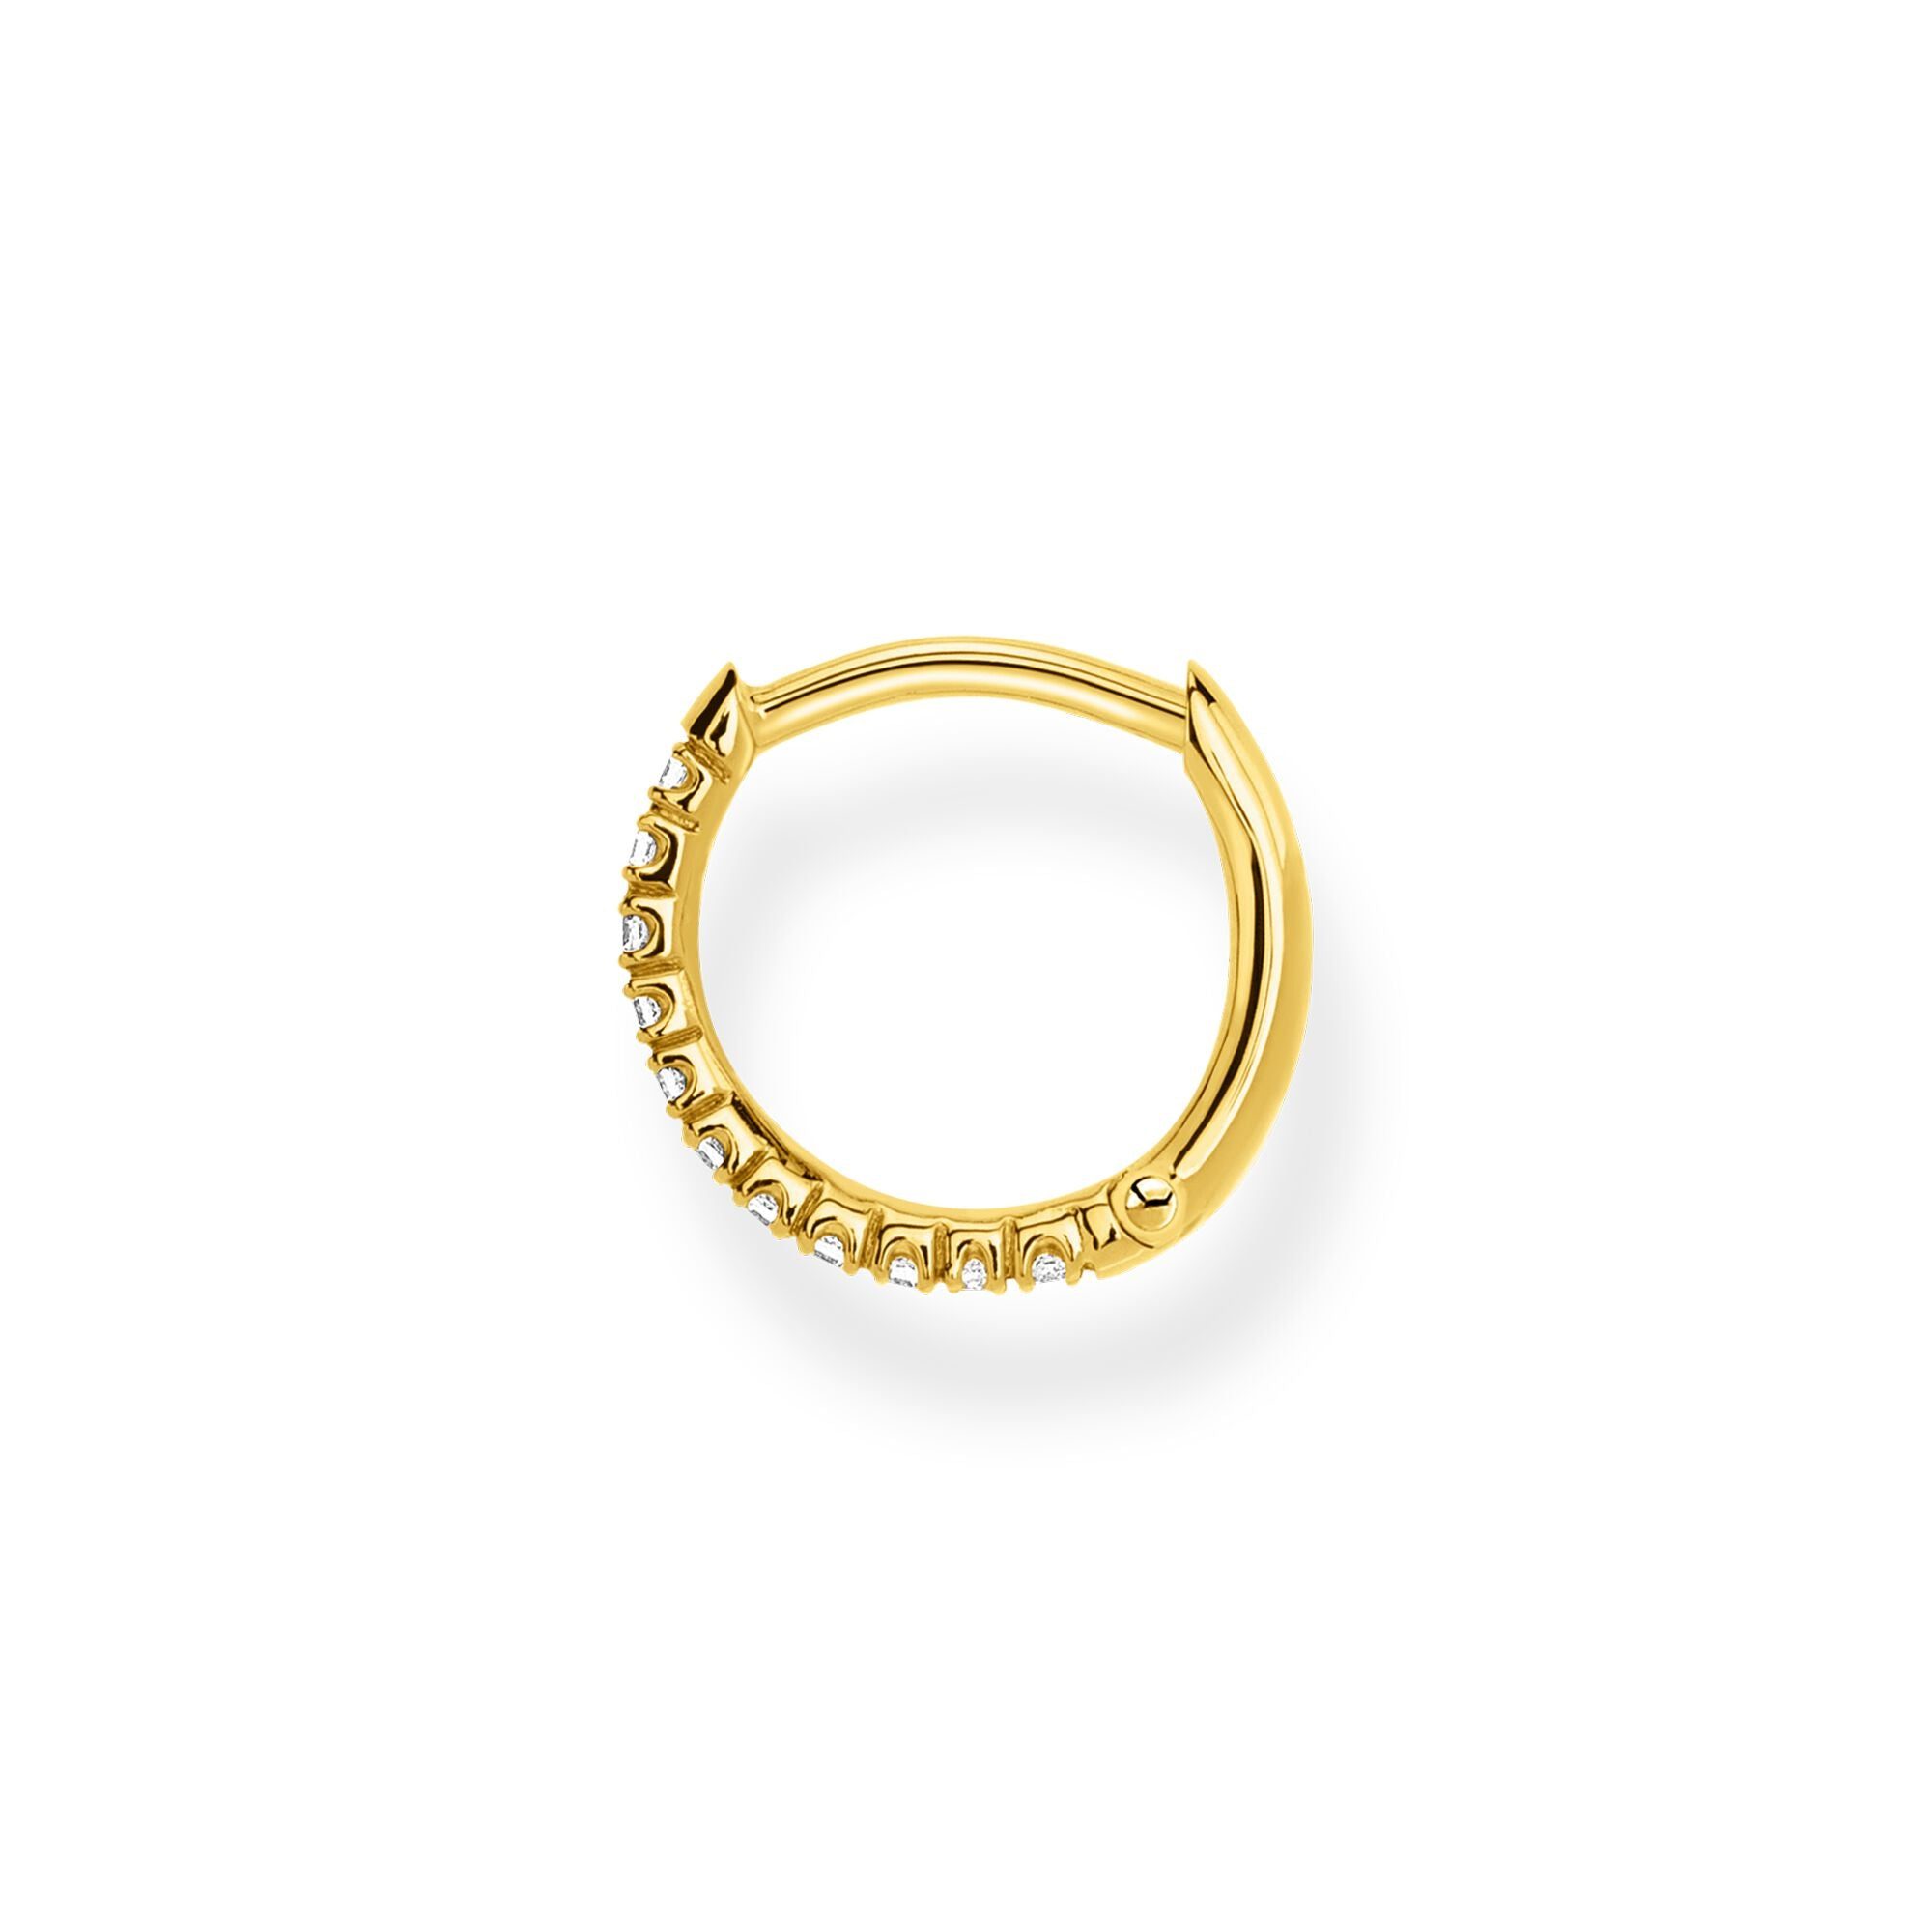 STERLING SILVER YELLOW GOLD PLATED CHARMING COLLECTION 13.5MM CZ HOOP EARRING SINGLE